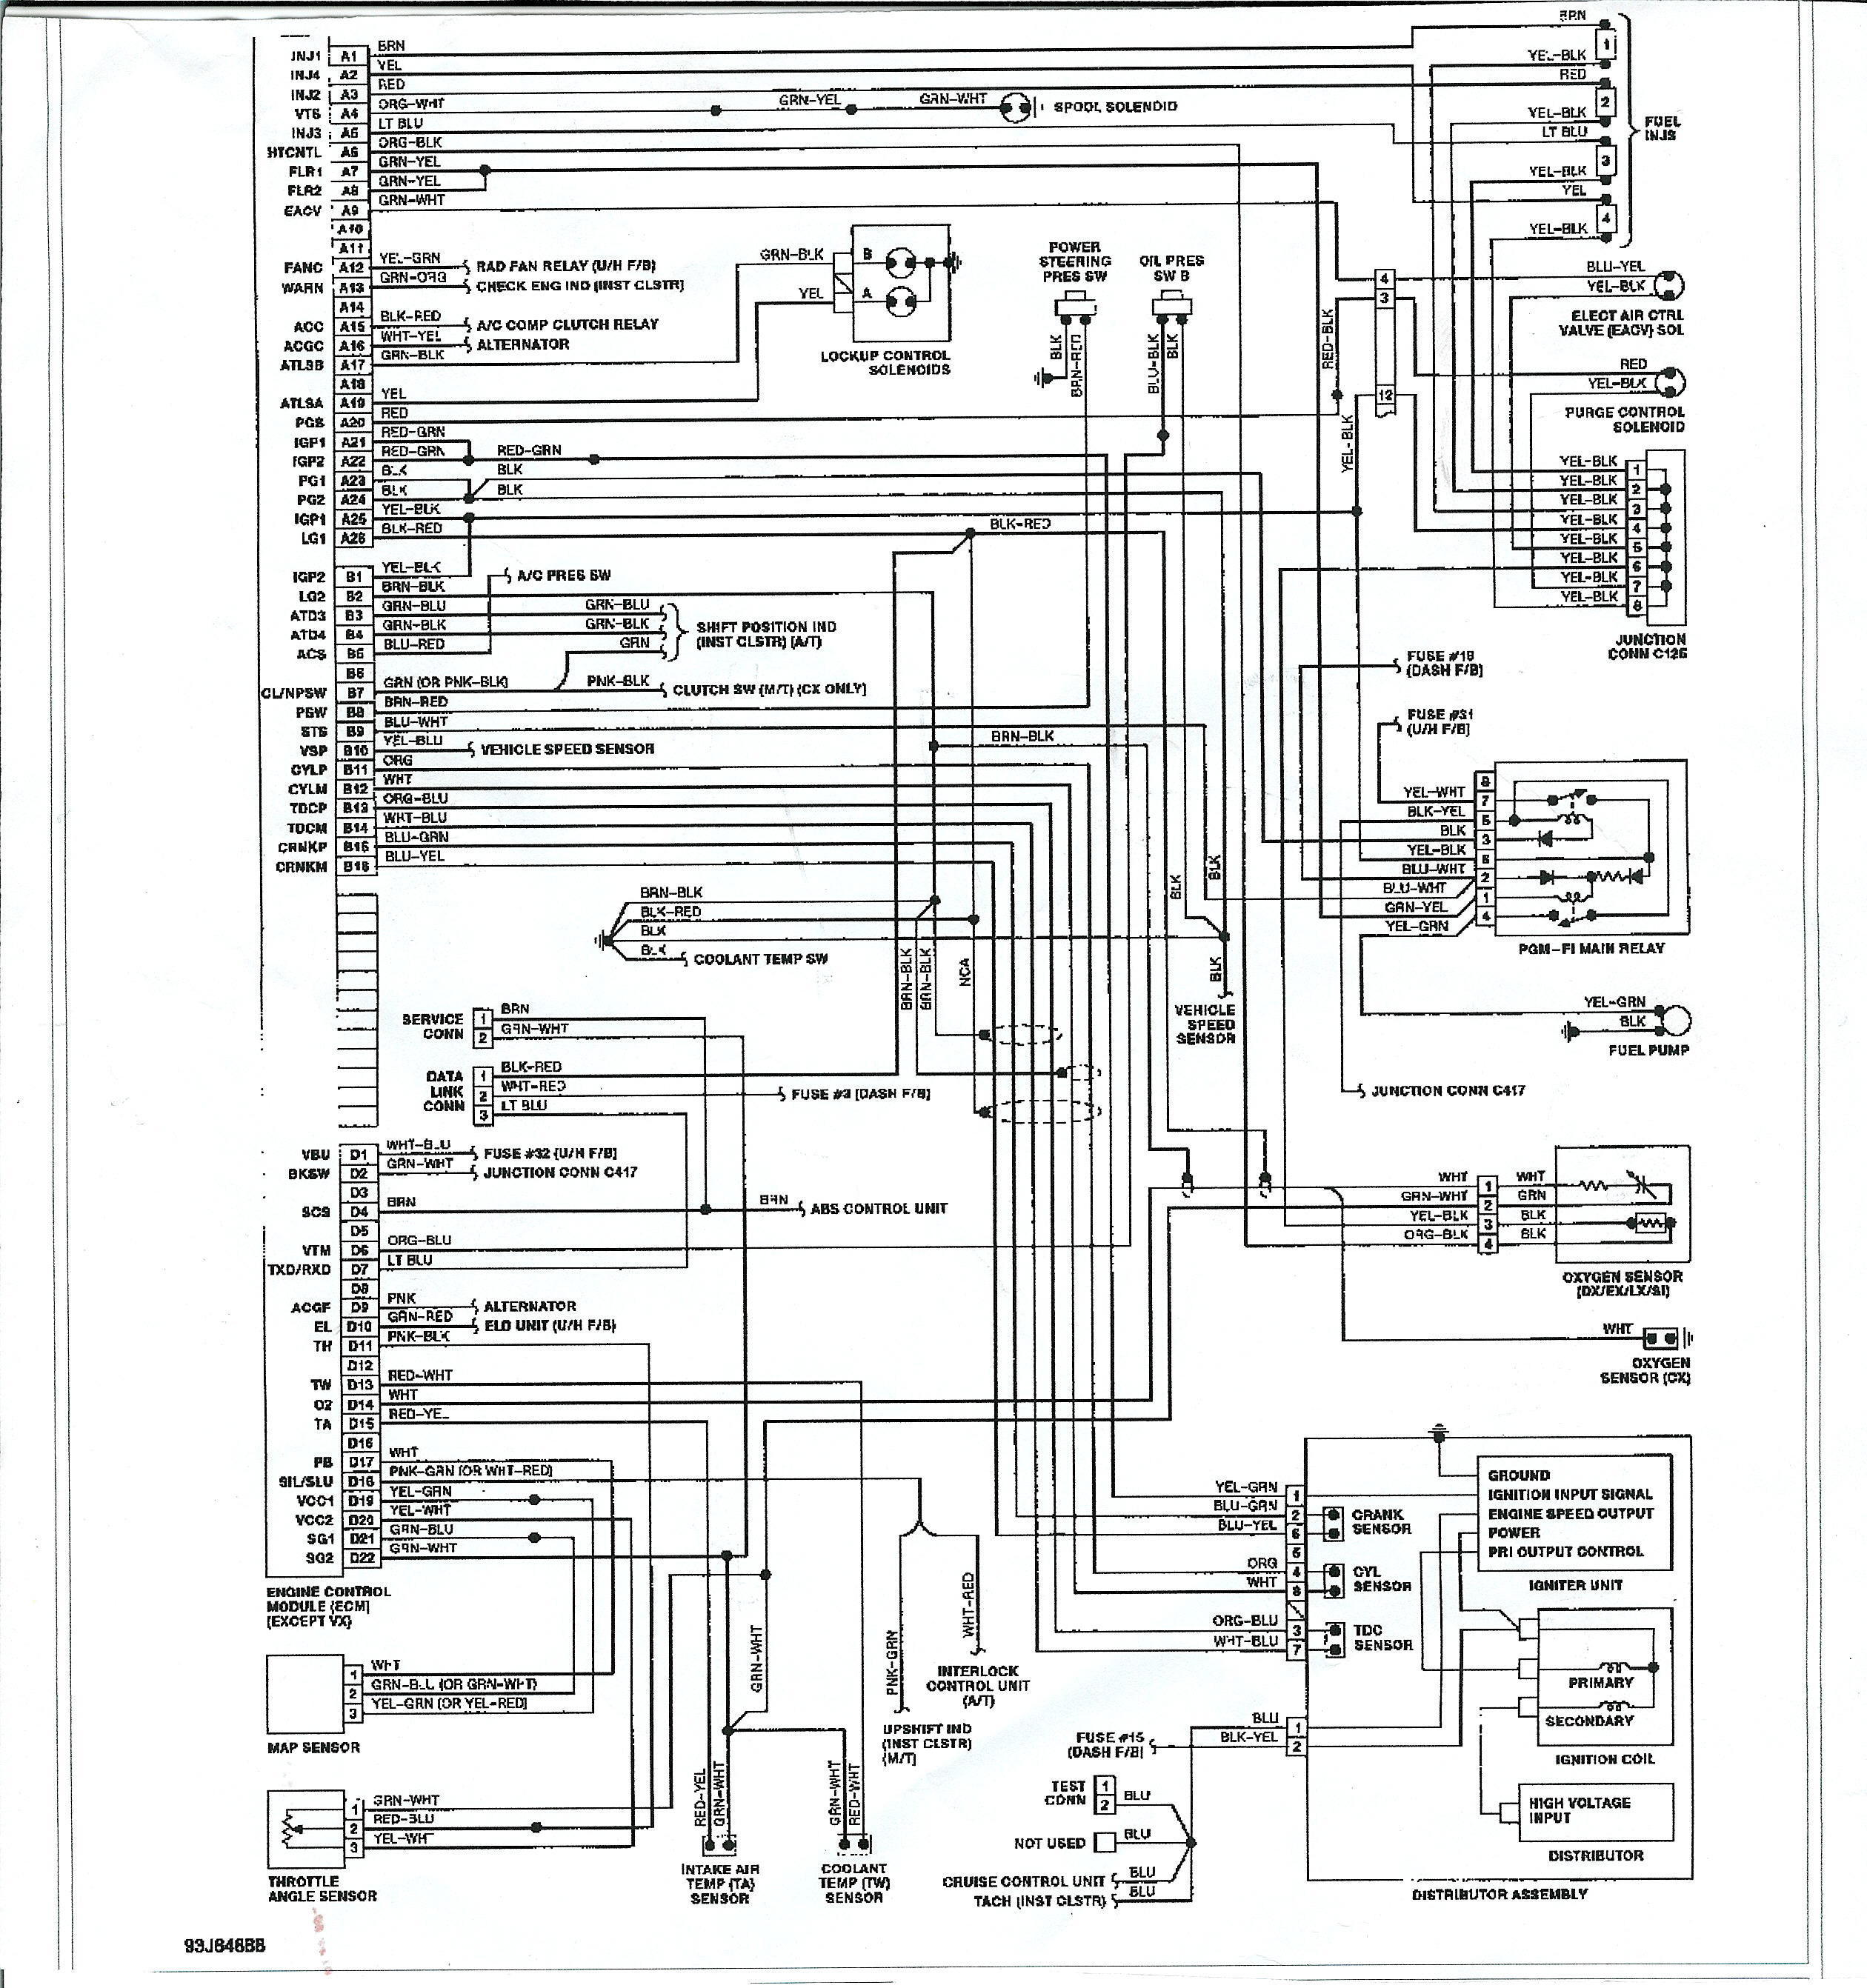 Acura Integra Wiring Diagram Hp Photosmart Printer